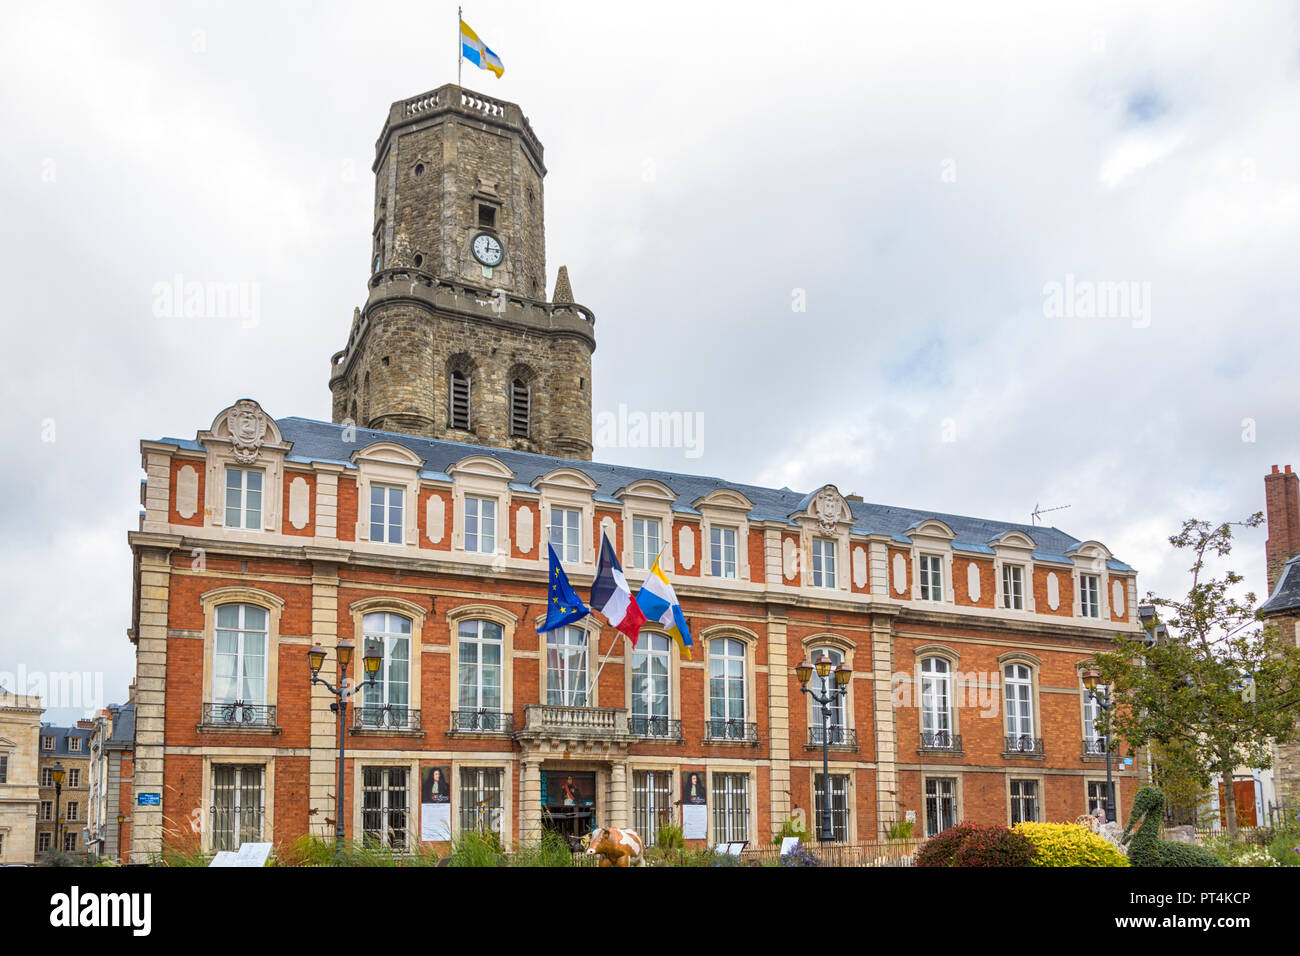 18th century Town hall and medieval bellfry of Boulogne-sur-Mer, France - Stock Image